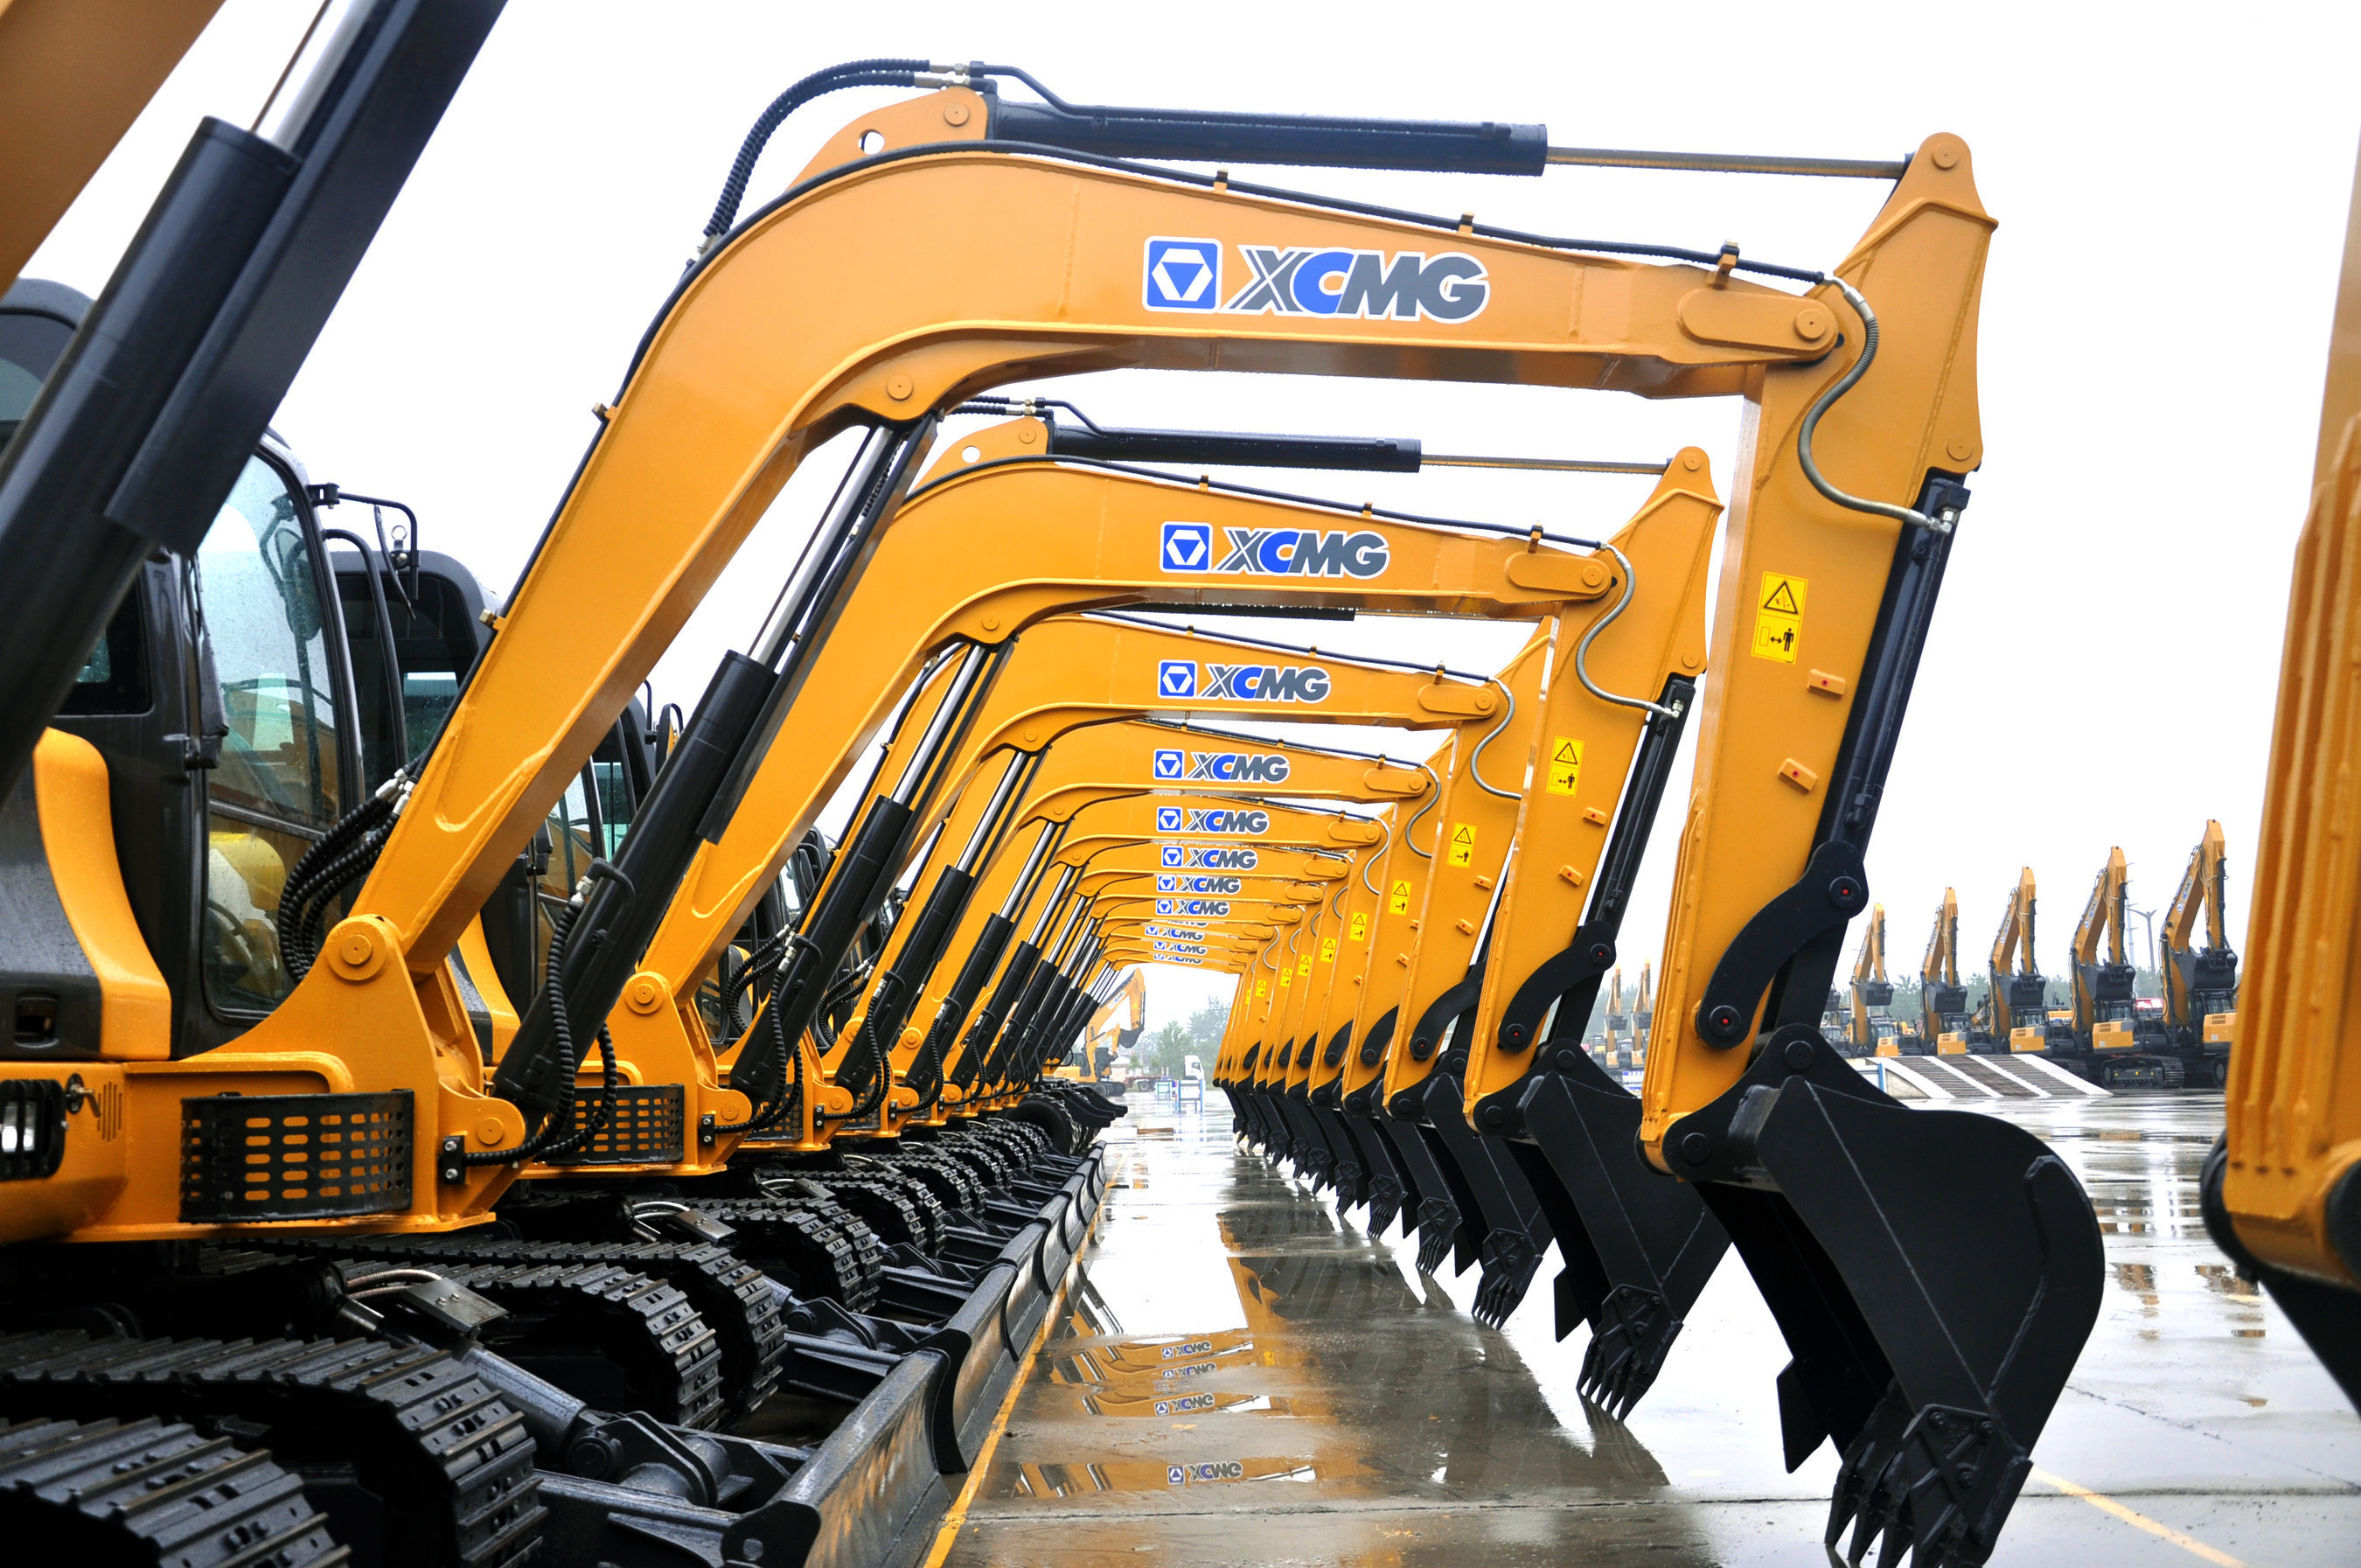 300 super large-tonnage excavators produced by XCMG are exported to countries covered in Belt and Road ...